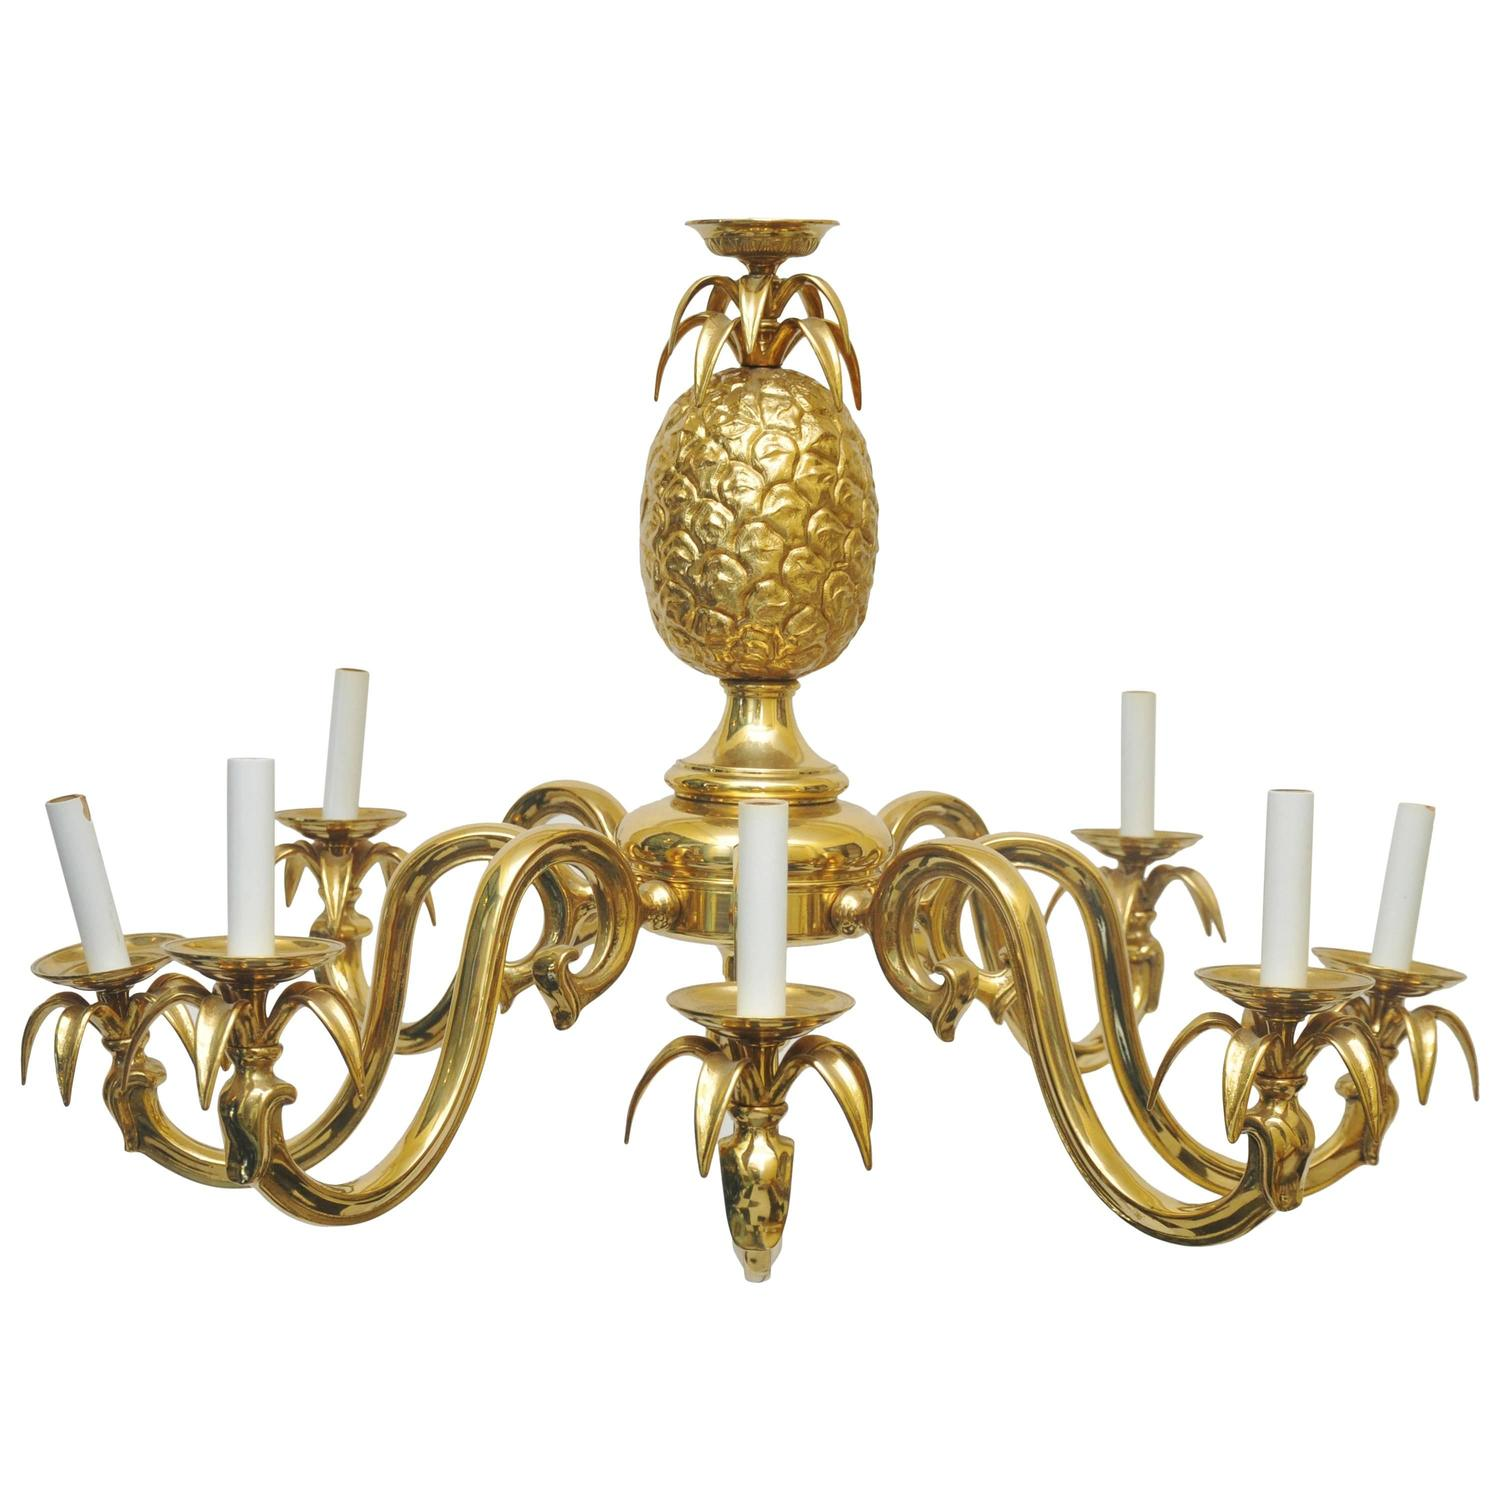 Scale Solid Brass Pineapple Chandelier at 1stdibs